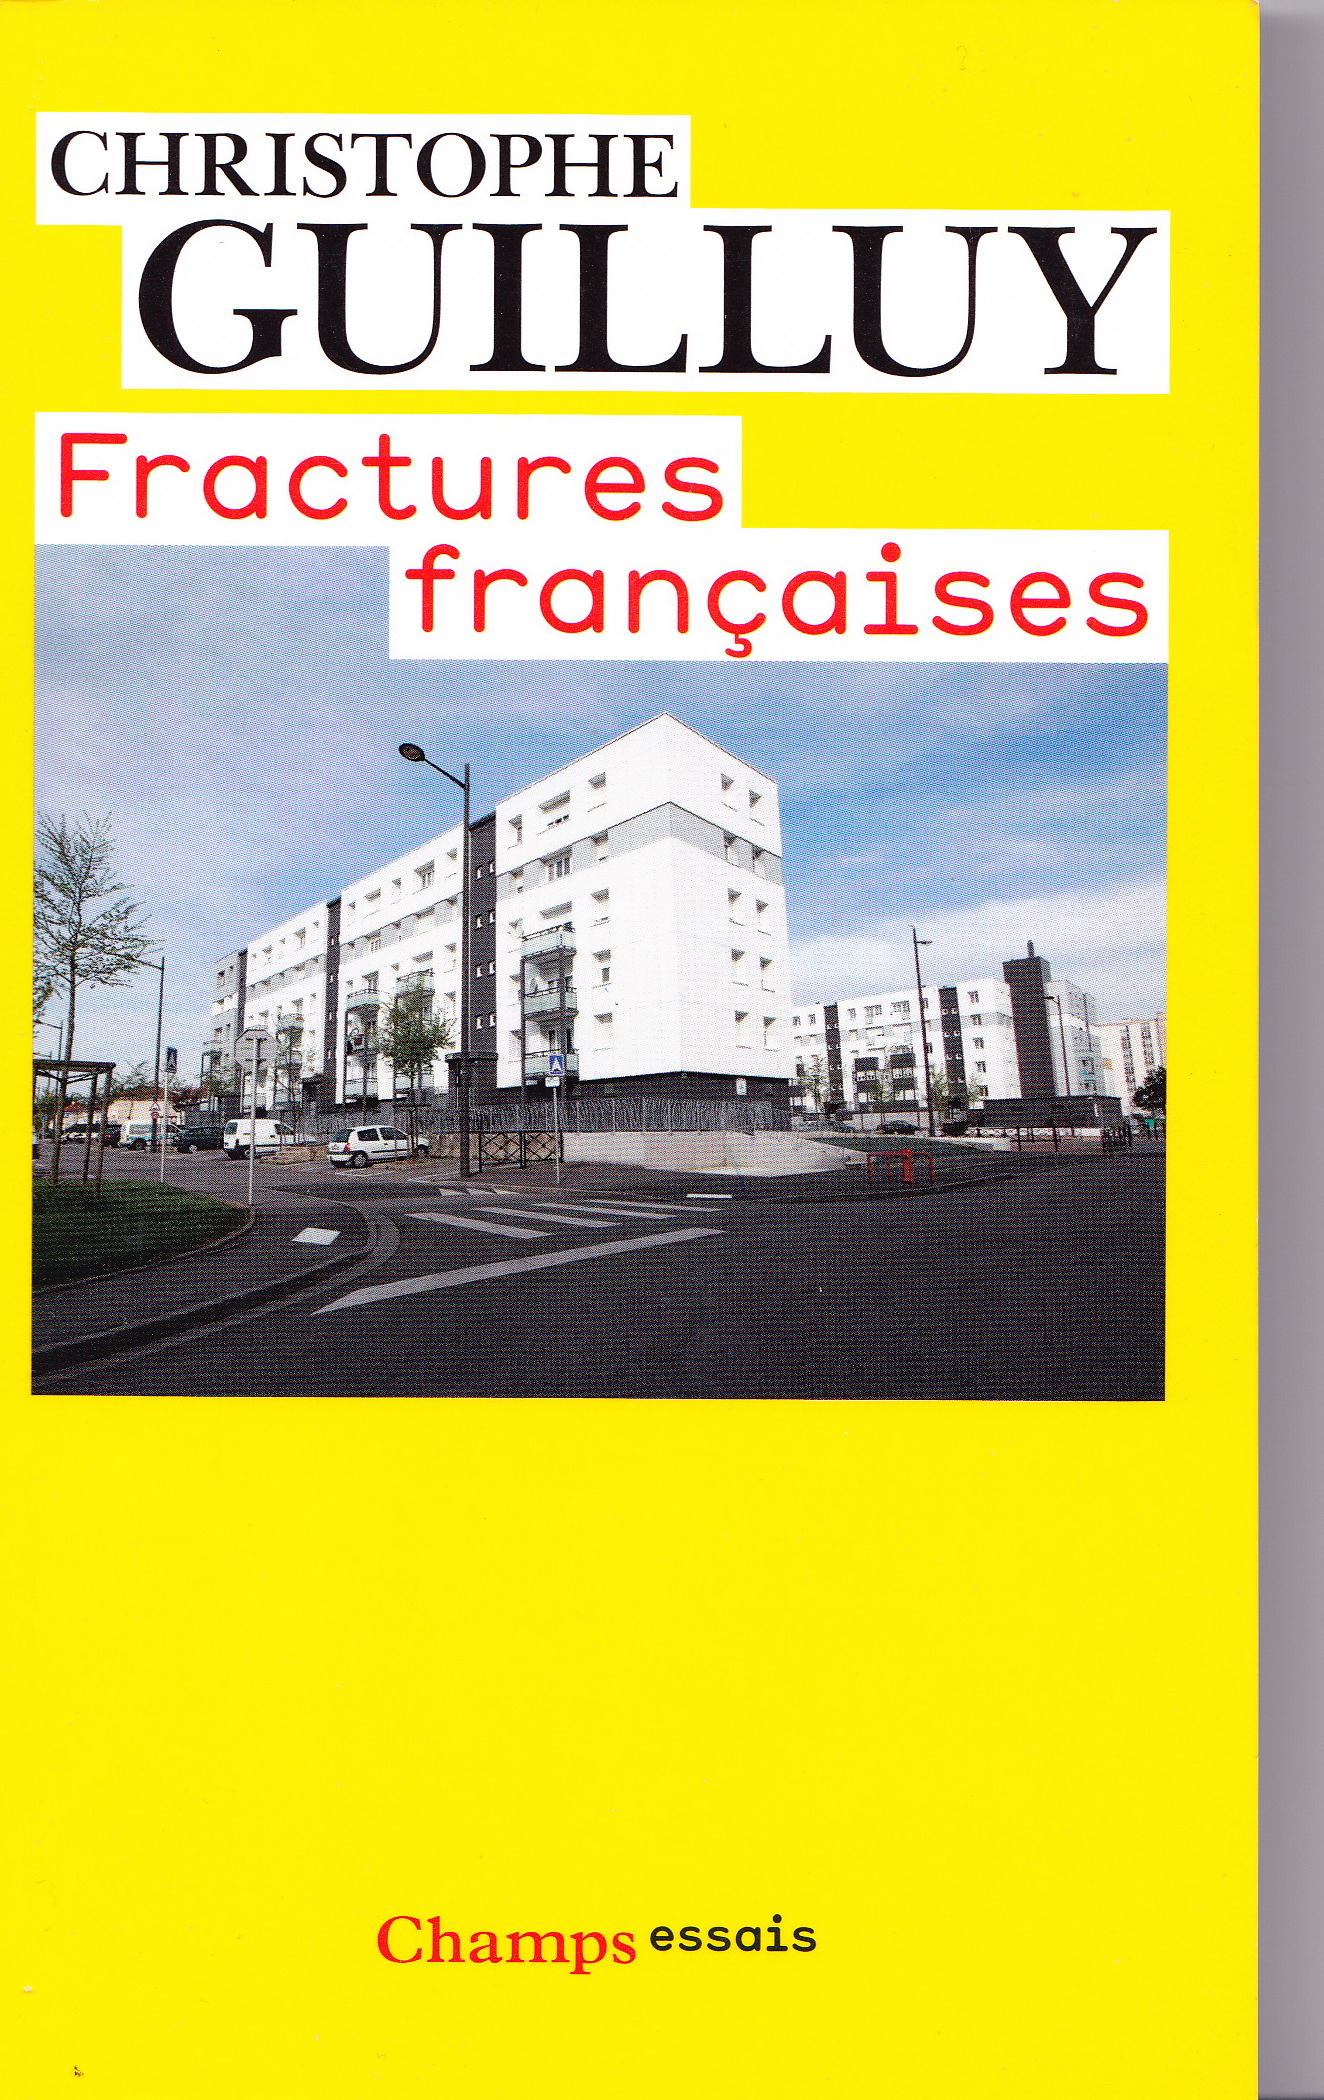 FracturesFrancaises